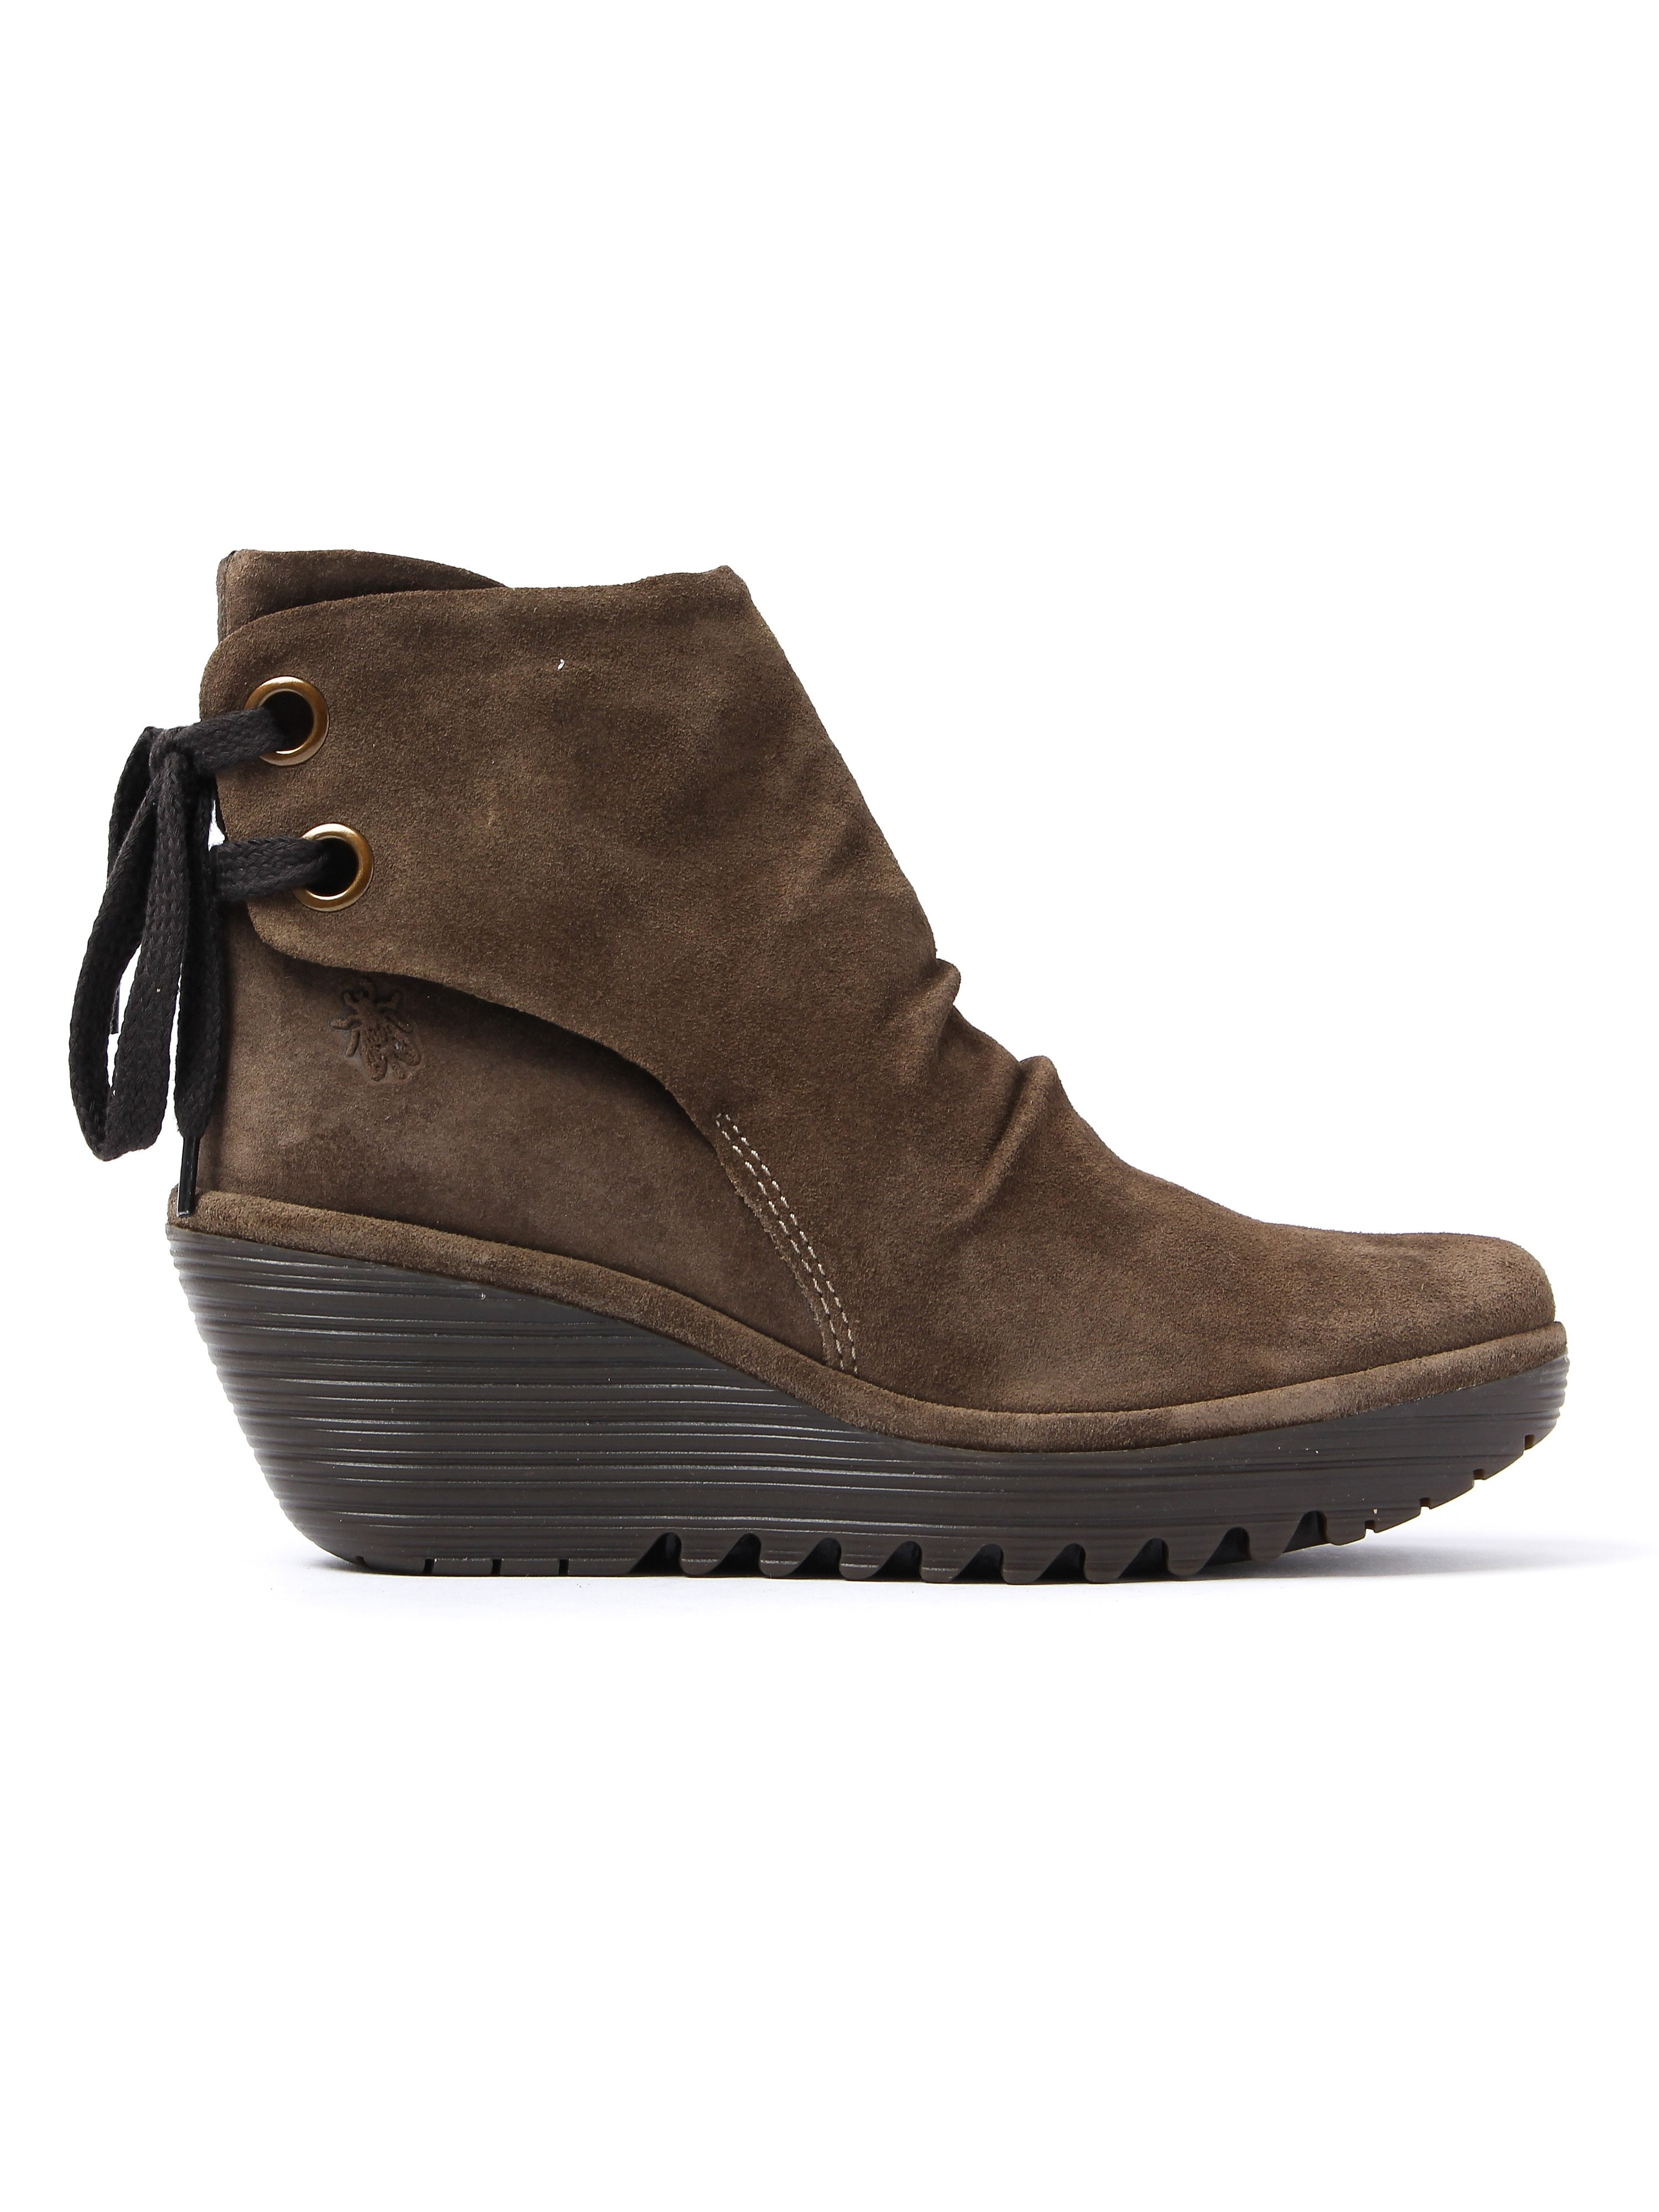 Fly London Women's Yama Ankle Boots - Oil Sludge Suede